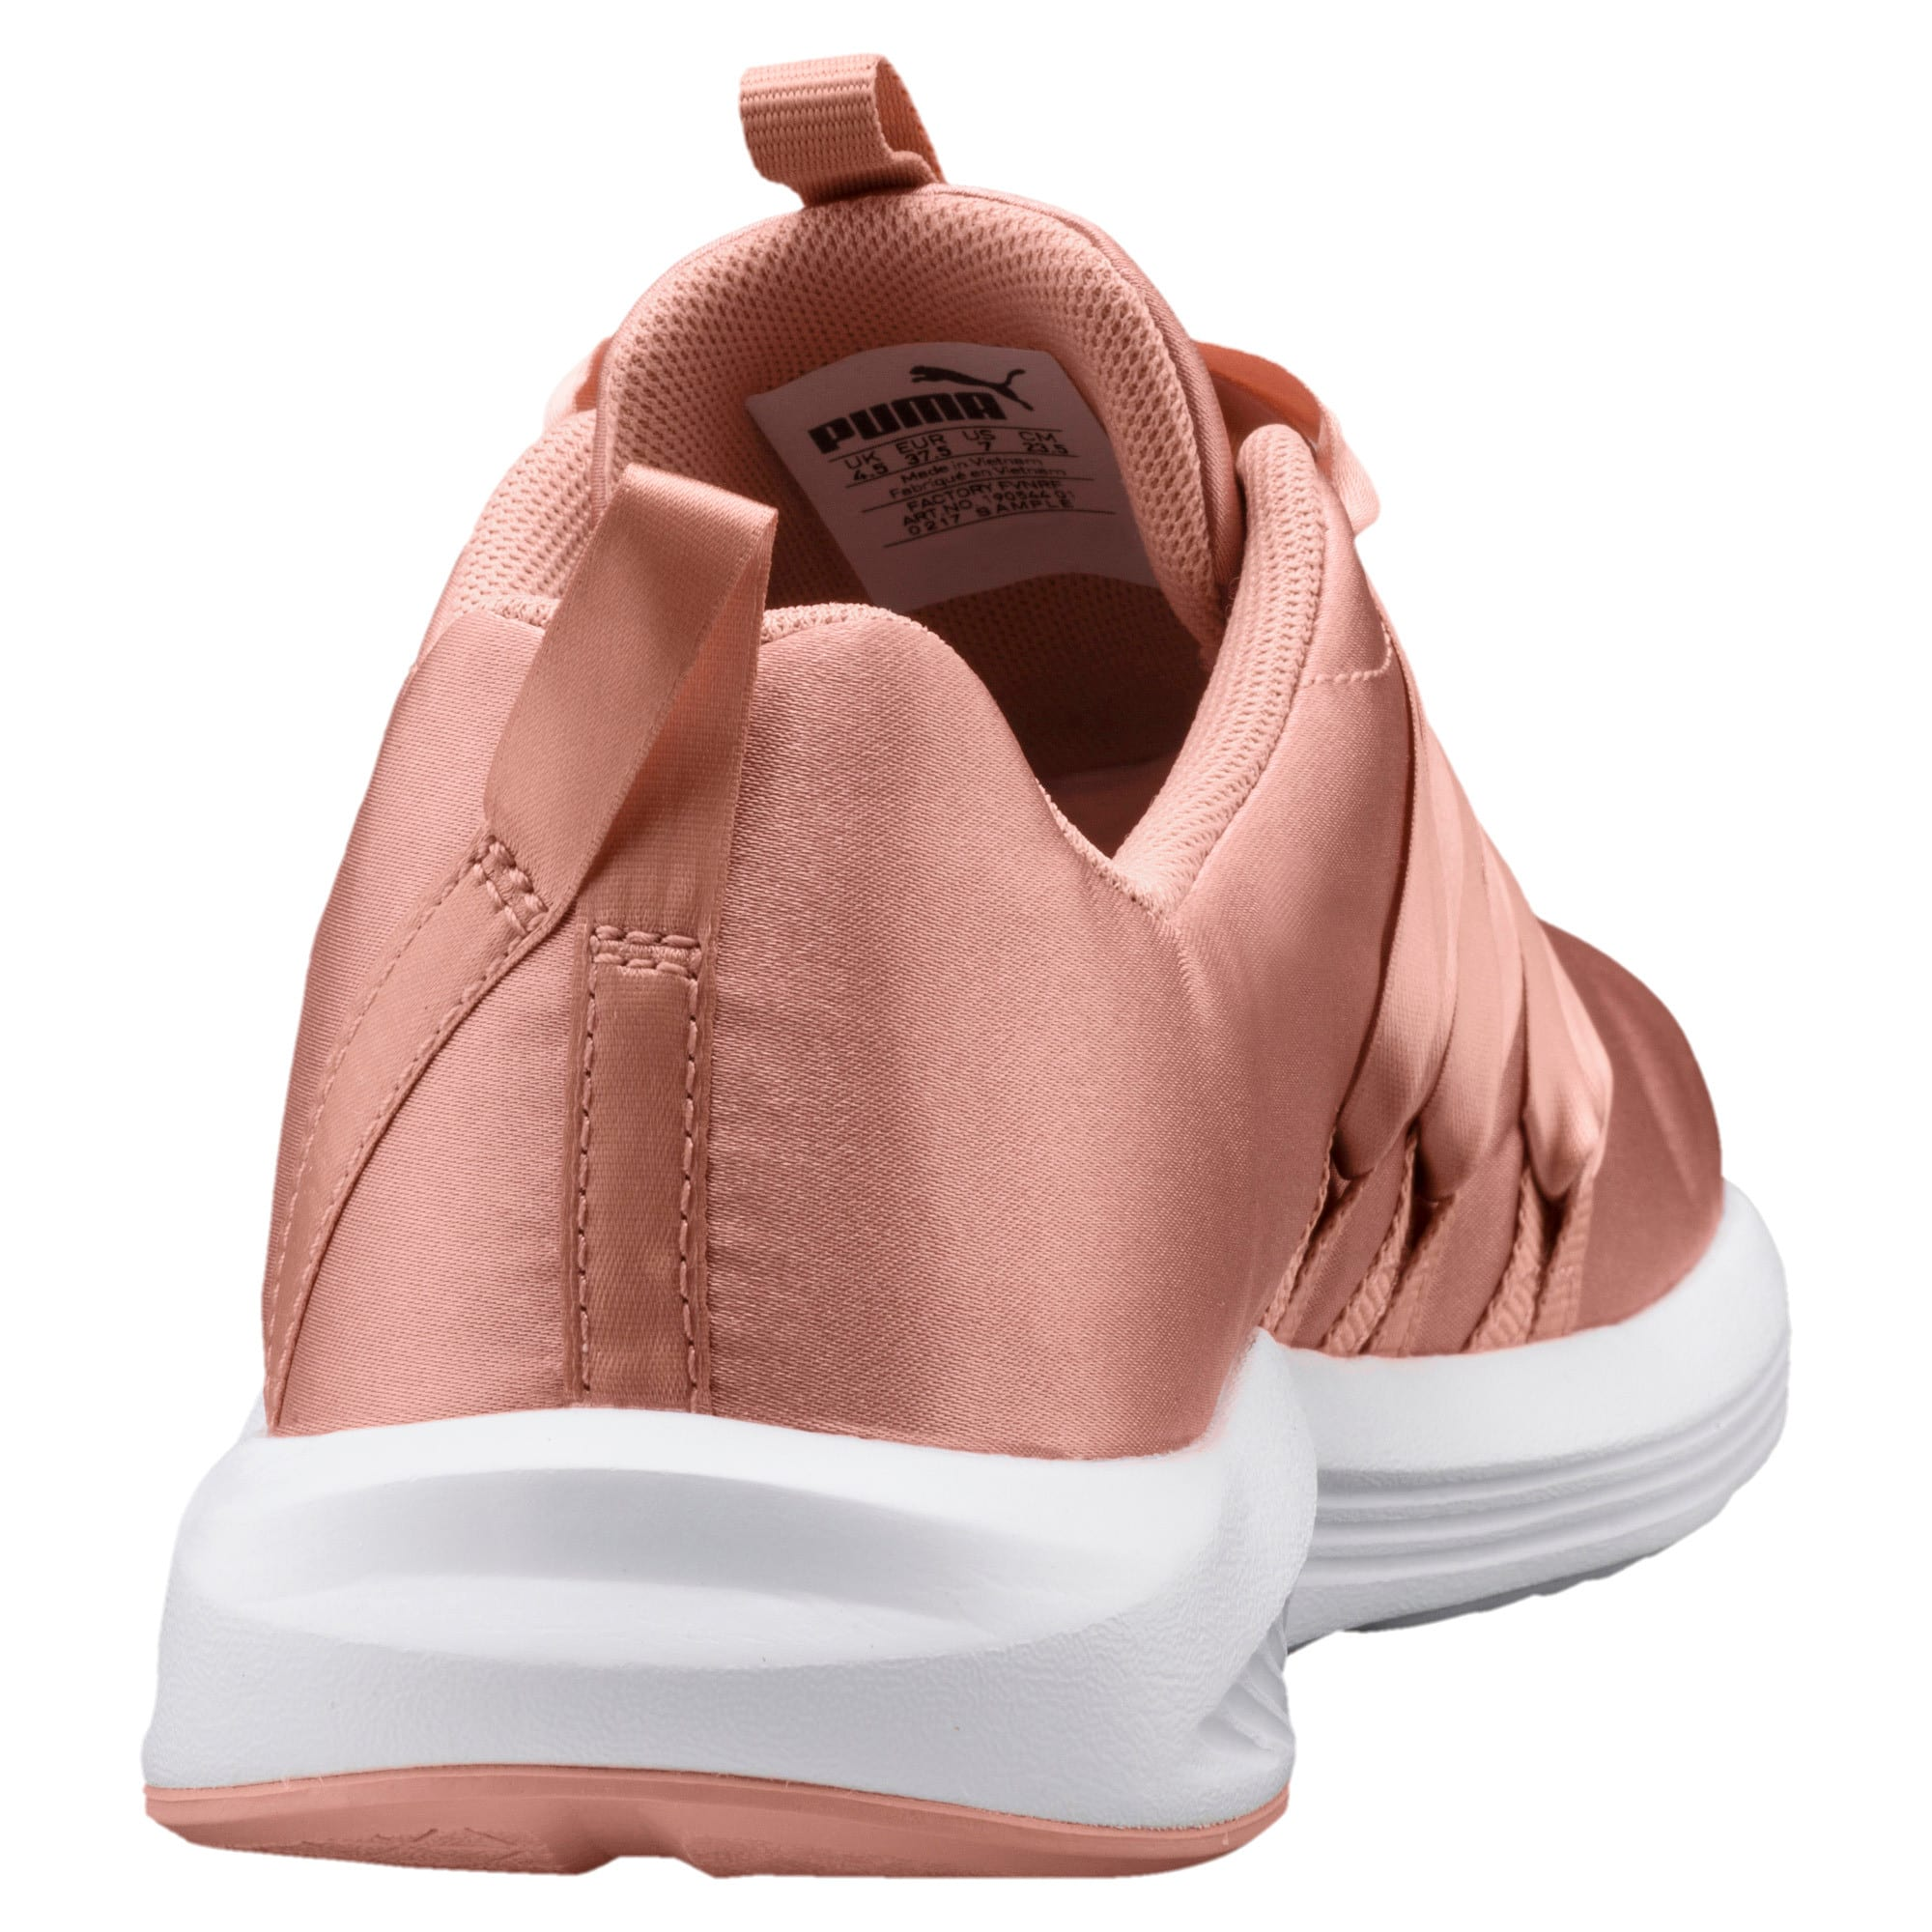 Thumbnail 4 of Prowl Alt Satin Women's Training Shoes, Peach Beige-Puma White, medium-IND